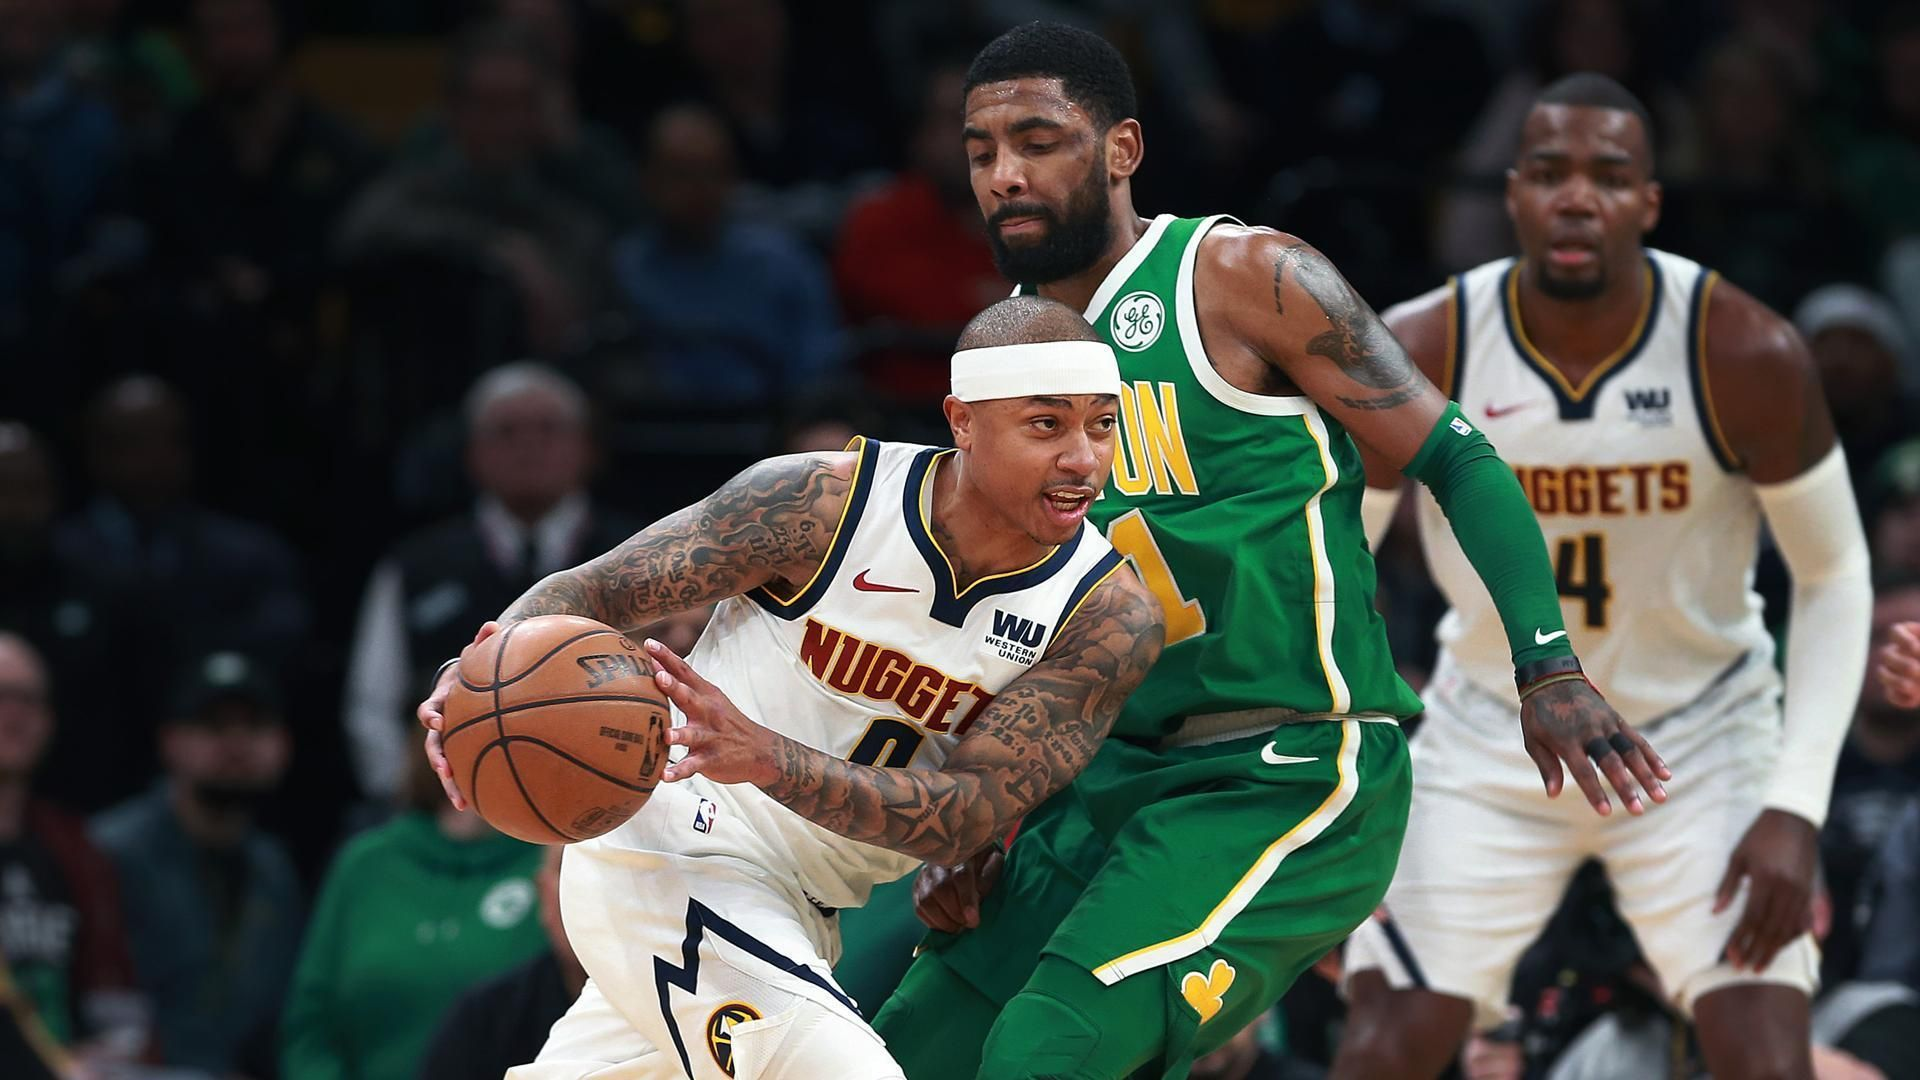 Nuggets have quite a time beating Celtics at TD Garden